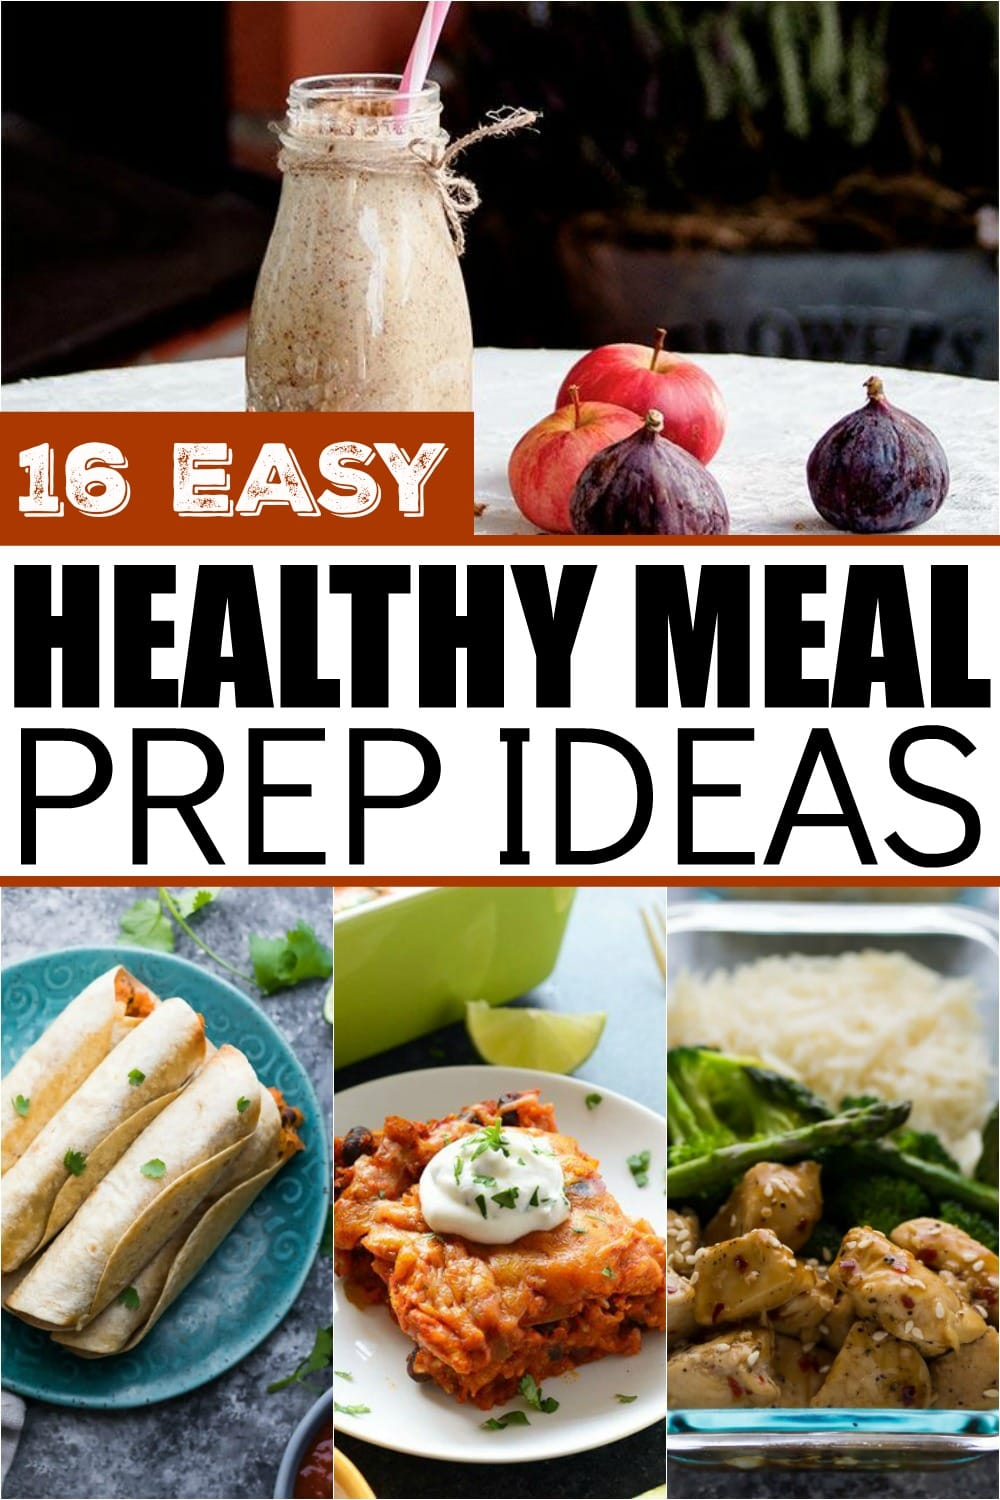 These meal prep ideas are awesome! I love how much time I save with meal prepping. Great recipes!